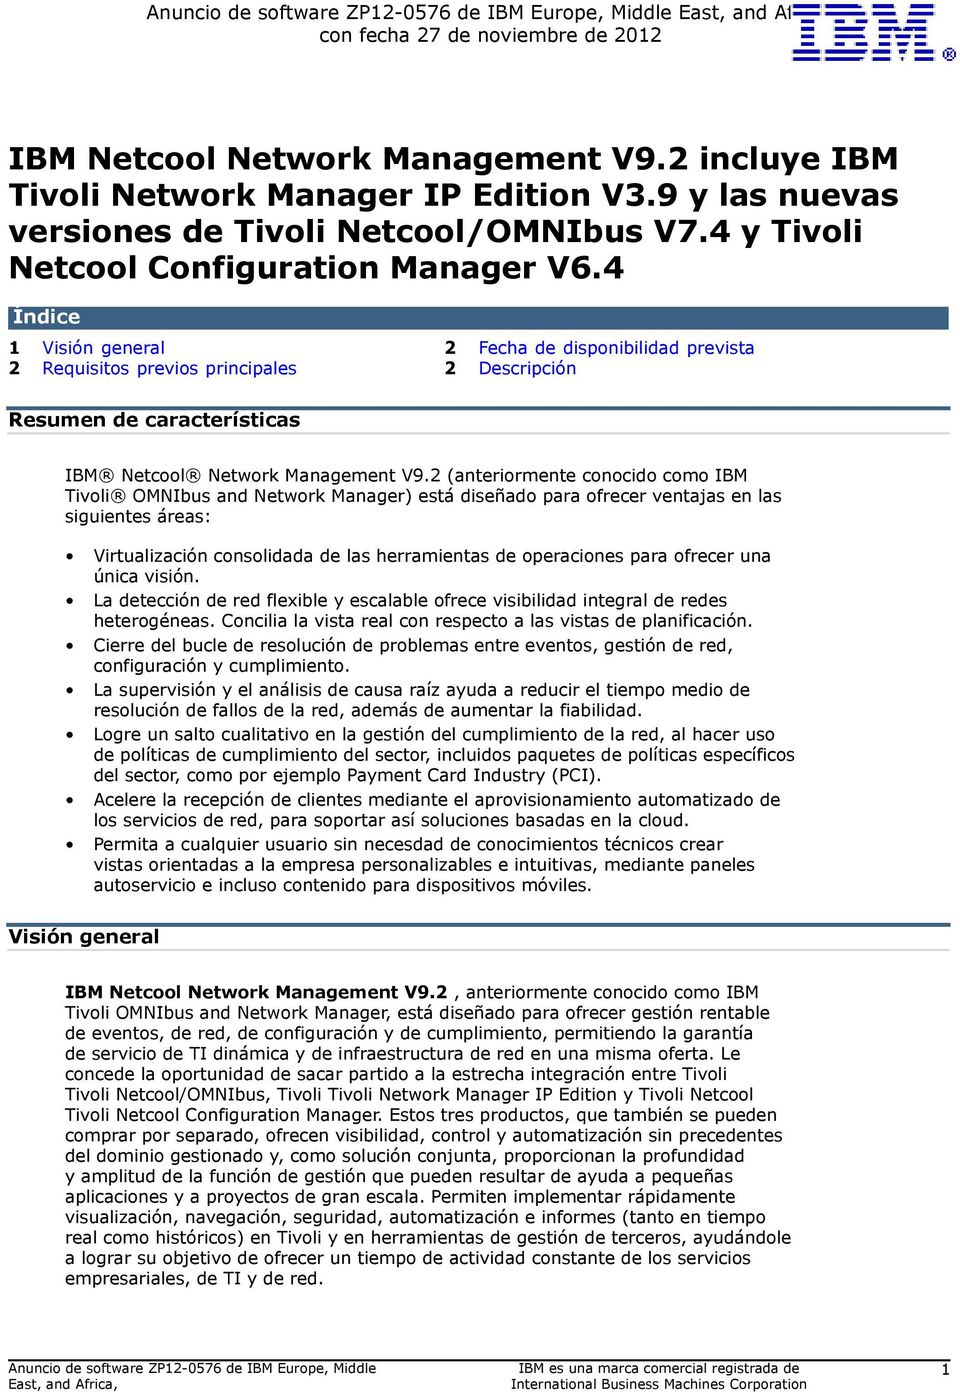 4 Índice 1 Visión general 2 Fecha de disponibilidad prevista 2 Requisitos previos principales 2 Descripción Resumen de características IBM Netcool Network Management V9.